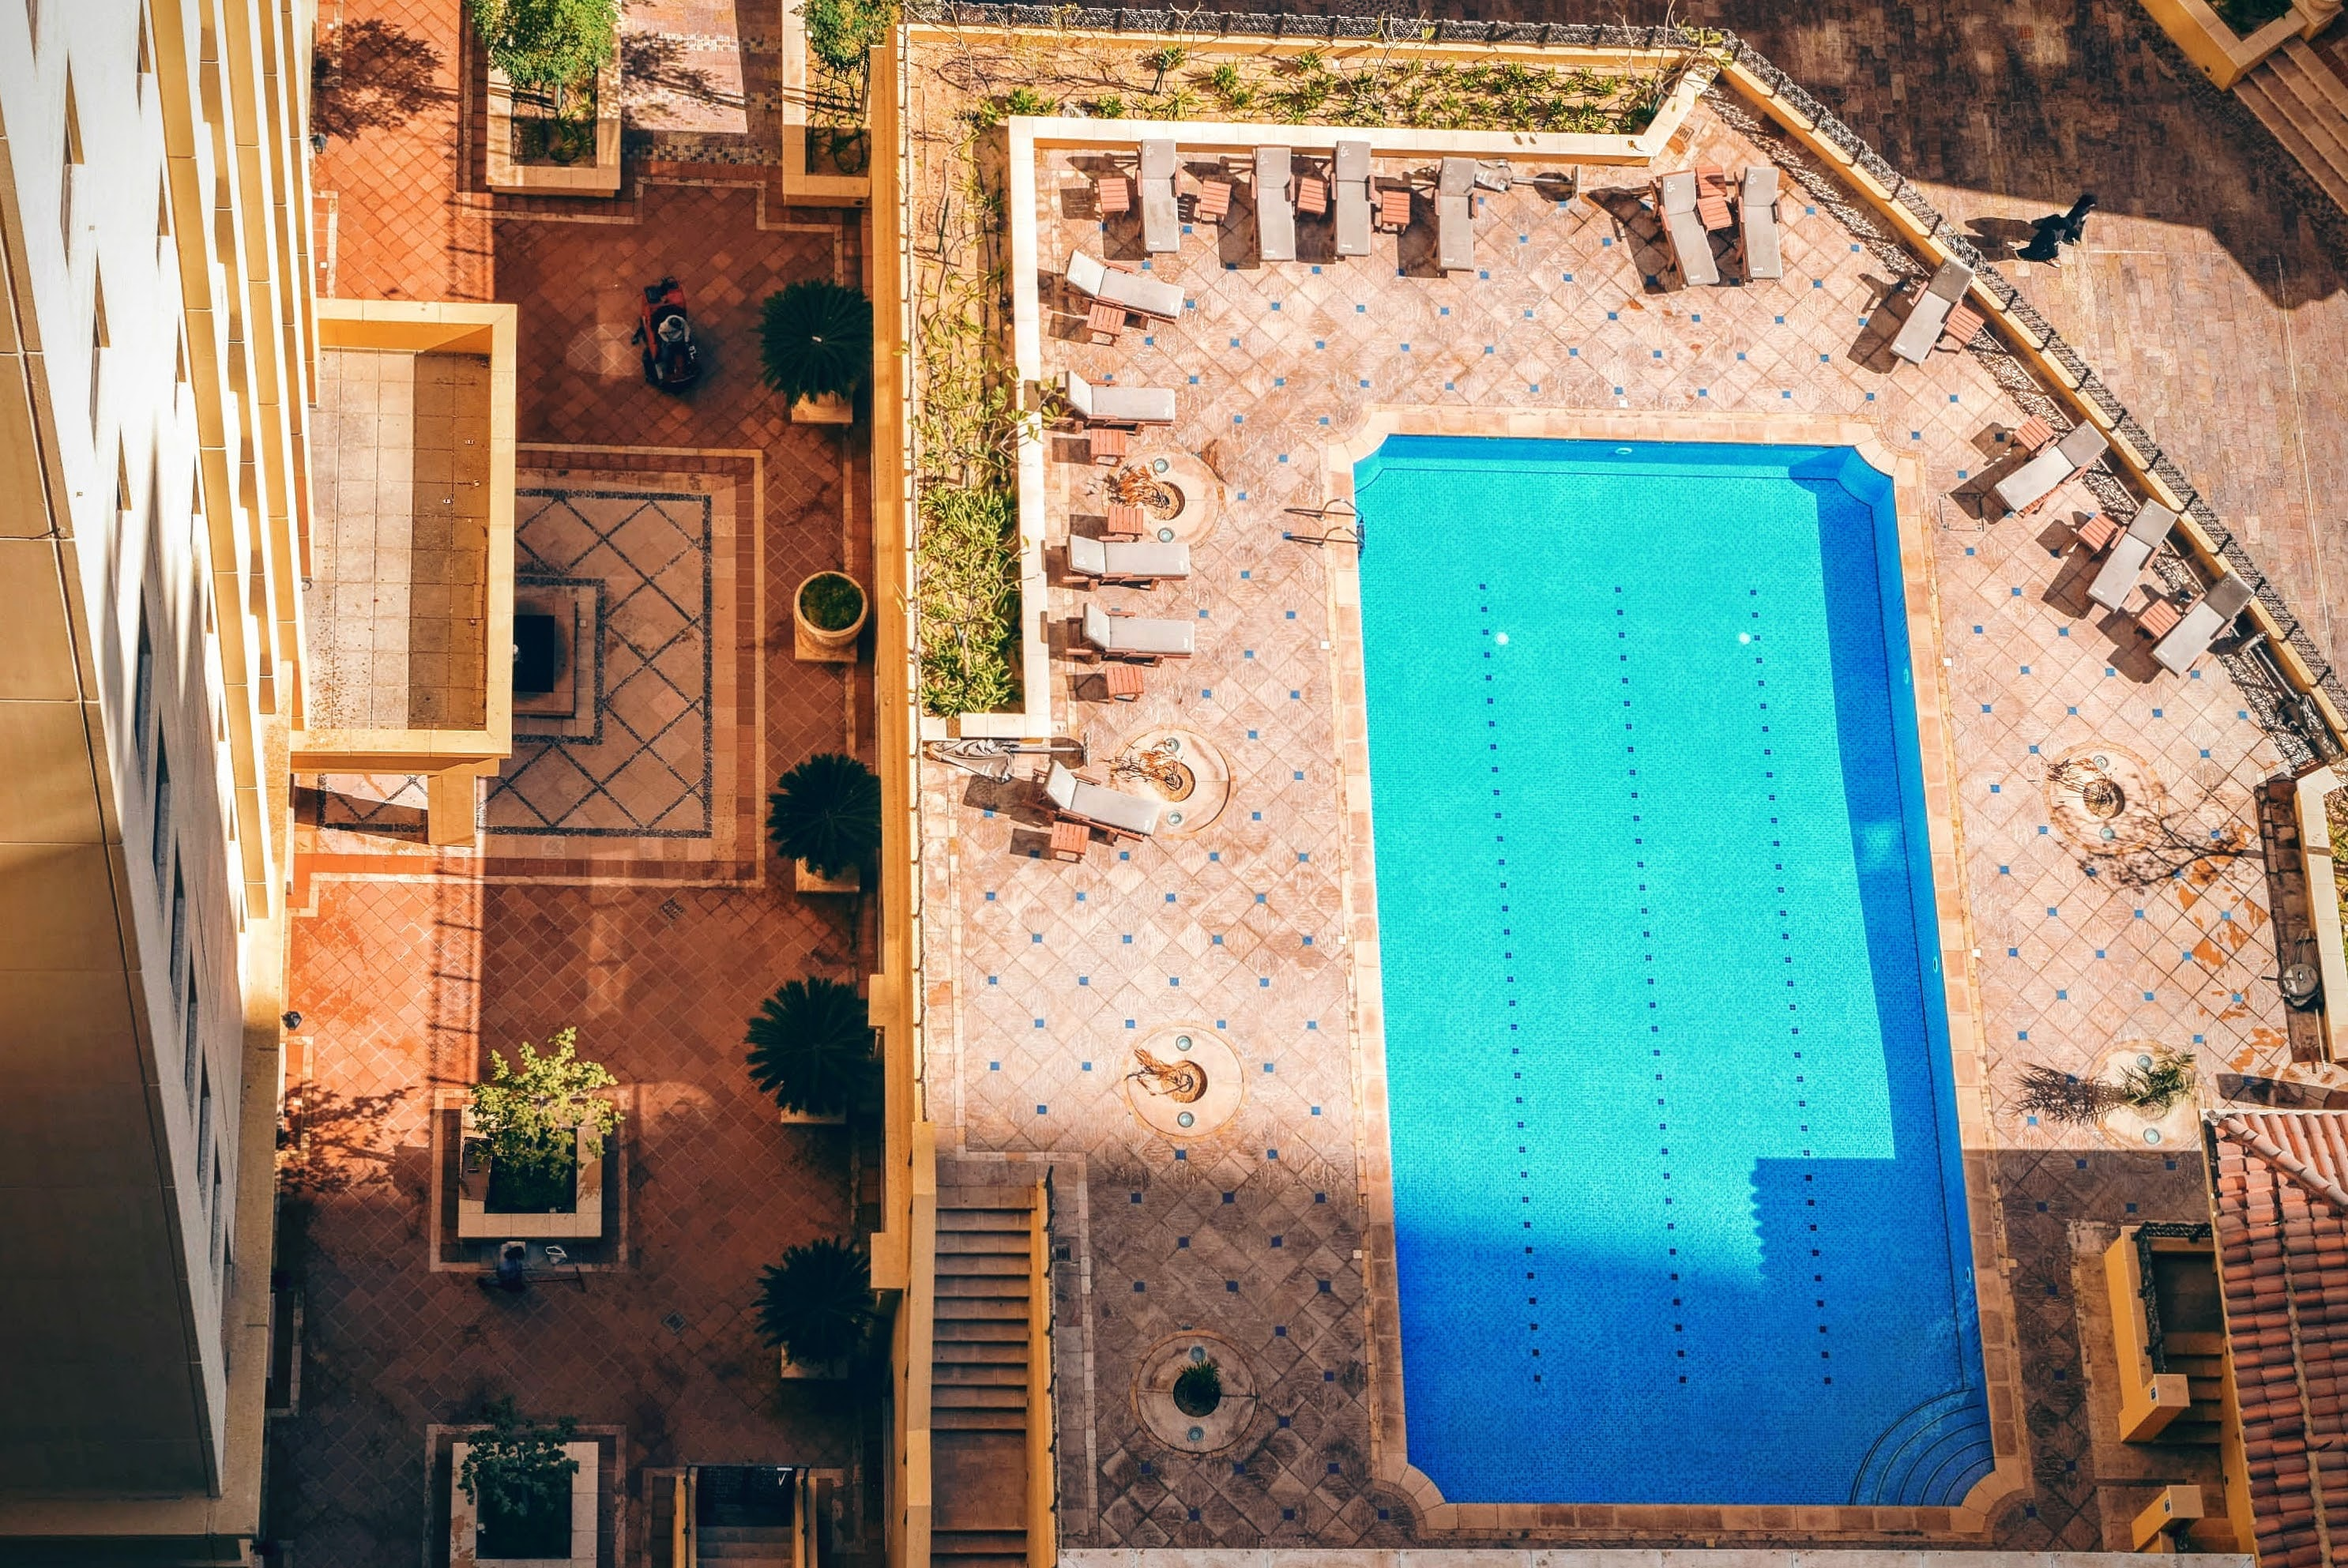 Drone view of pool near building surrounded by lounger deck chairs